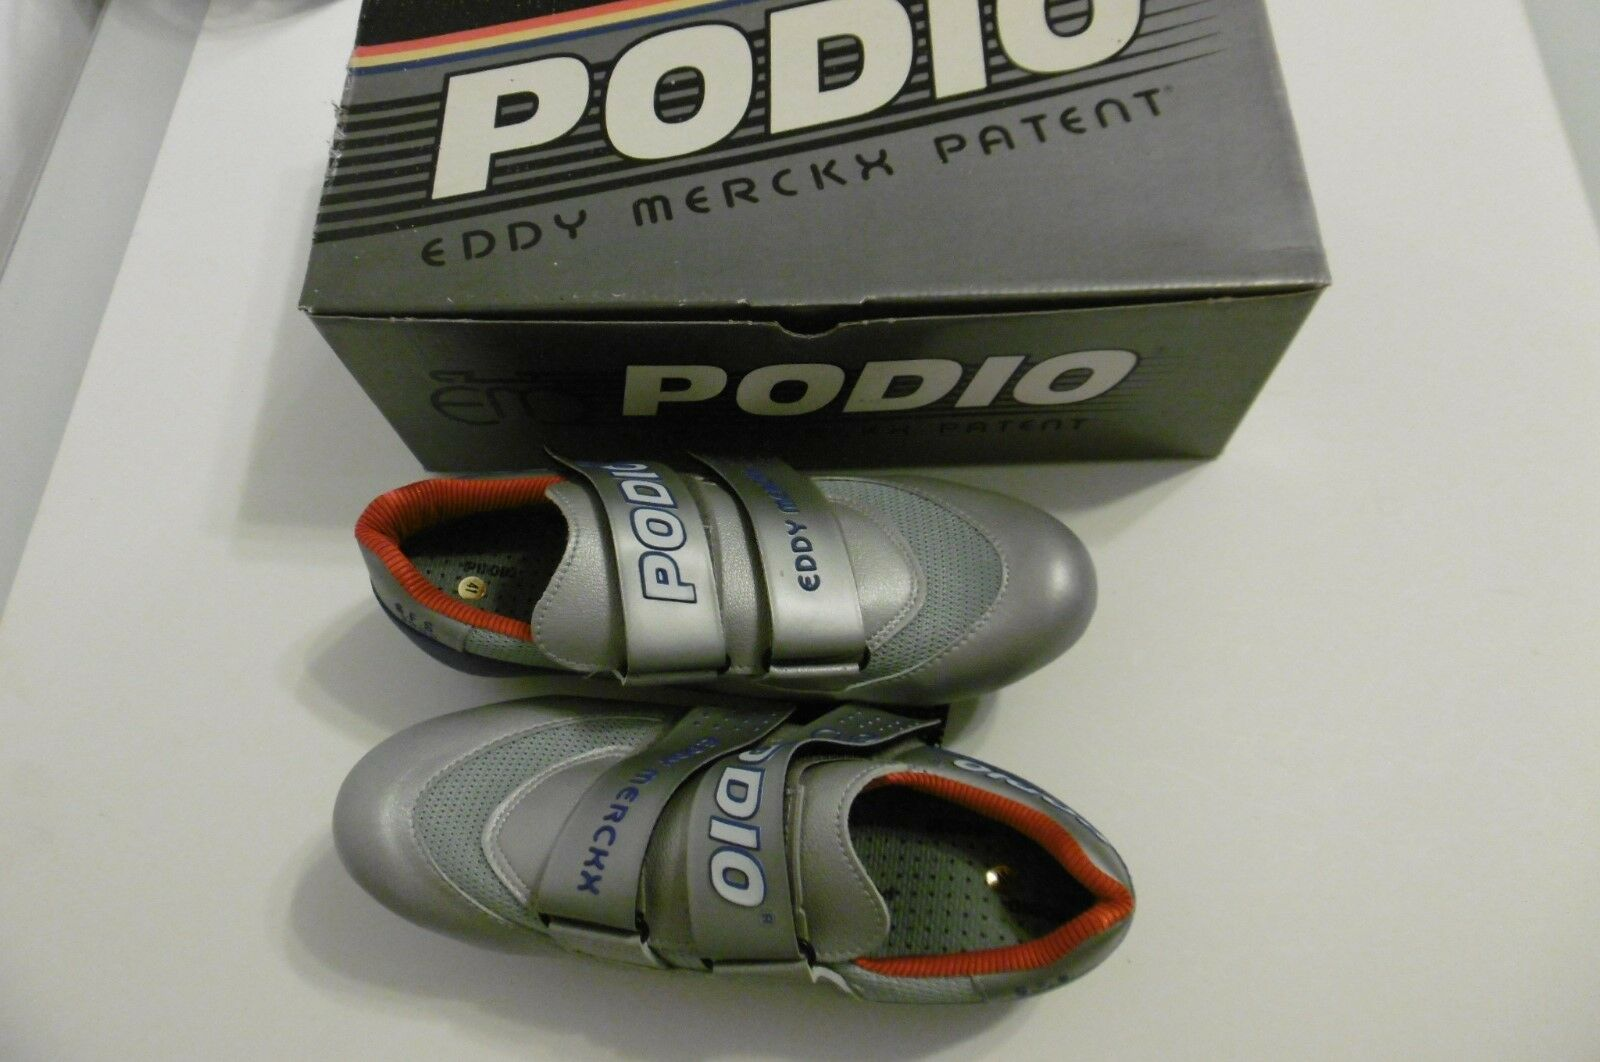 Eddy Merckx Patent Podio S.F.S.2000 schuhe Größe 41 With schuhe Cleats New In Box